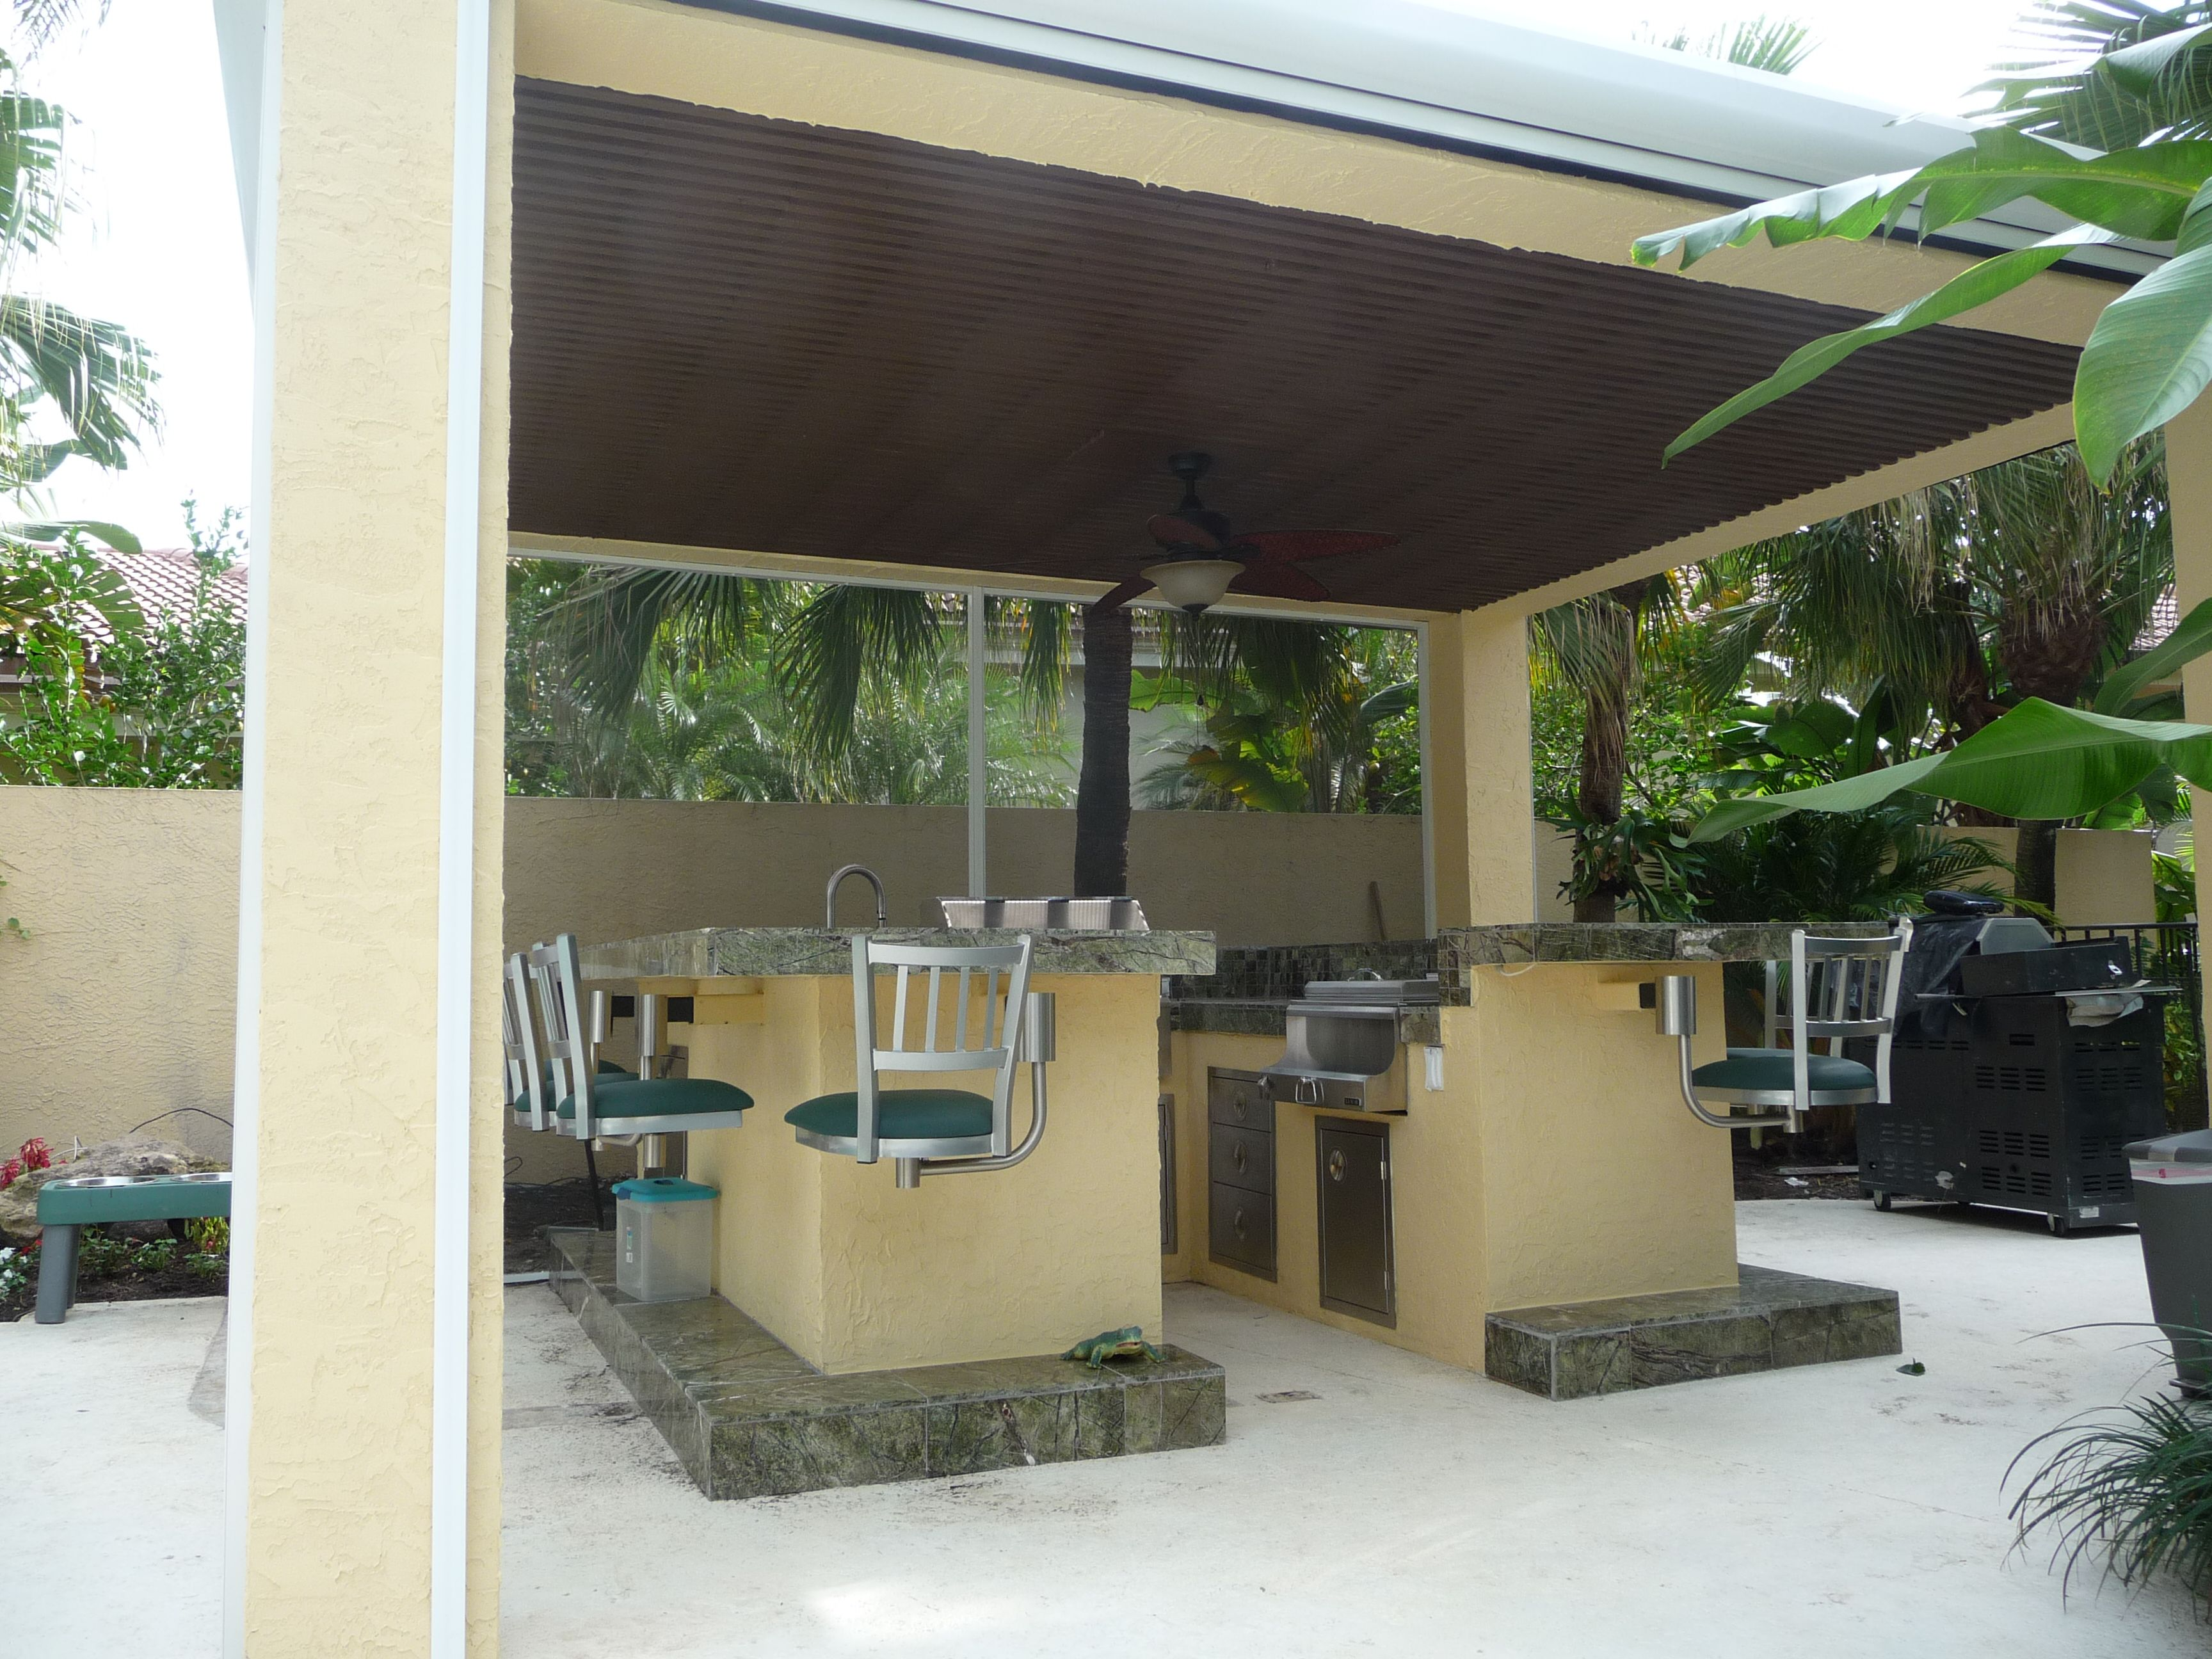 Covered outdoor kitchen outdoor kitchen ideas pinterest for Covered outdoor kitchen ideas